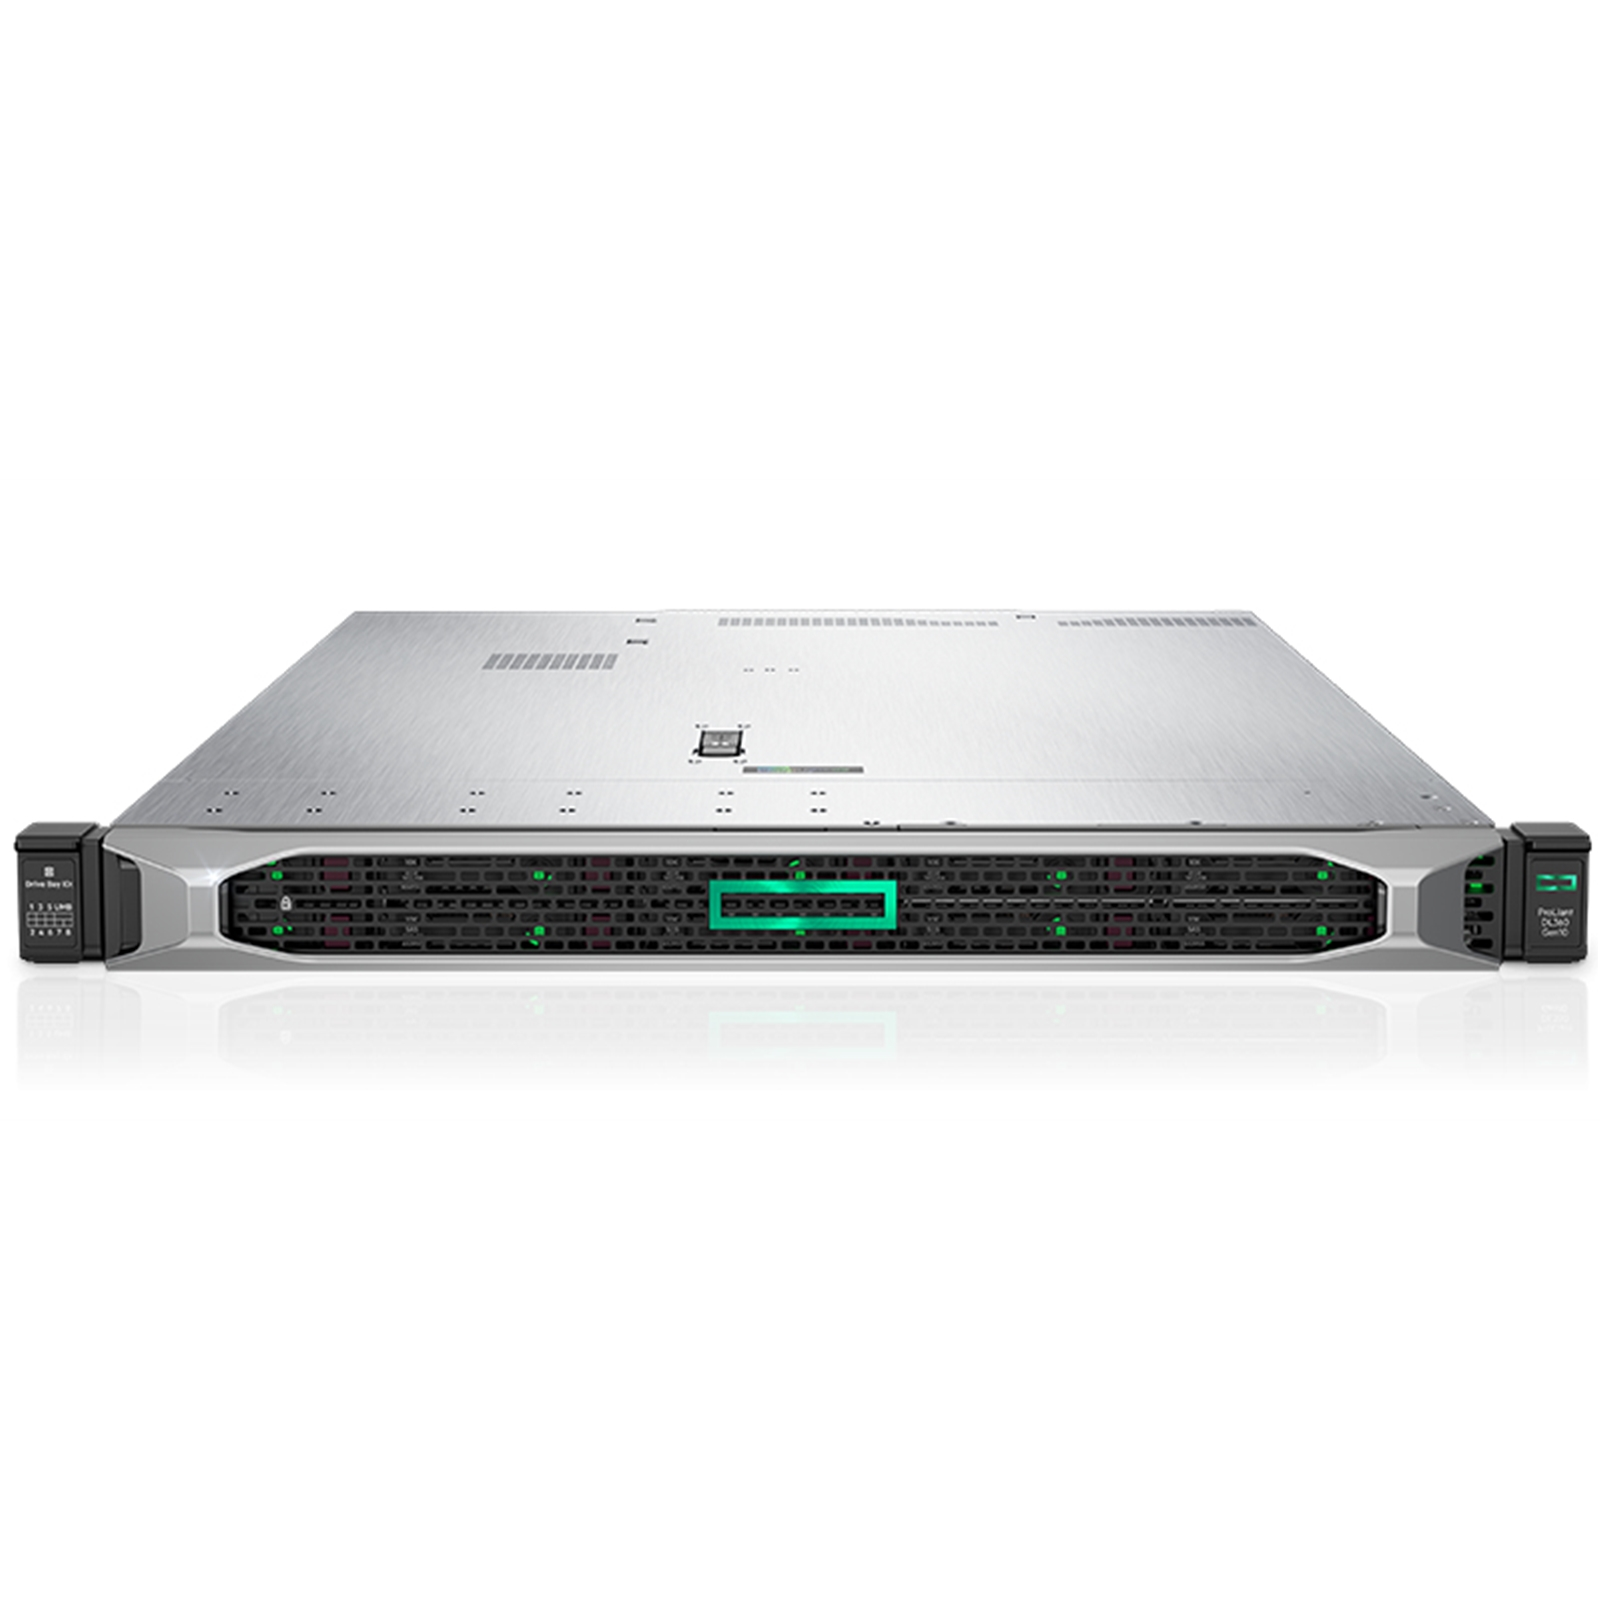 HPE 867964-B21 ENTERPRISE PROLIANT DL360 GEN10 2 XEON GOLD 6130 64GB RAM SATA HOT SWAP 2.5 IN (NO HDD) RACK SERVER